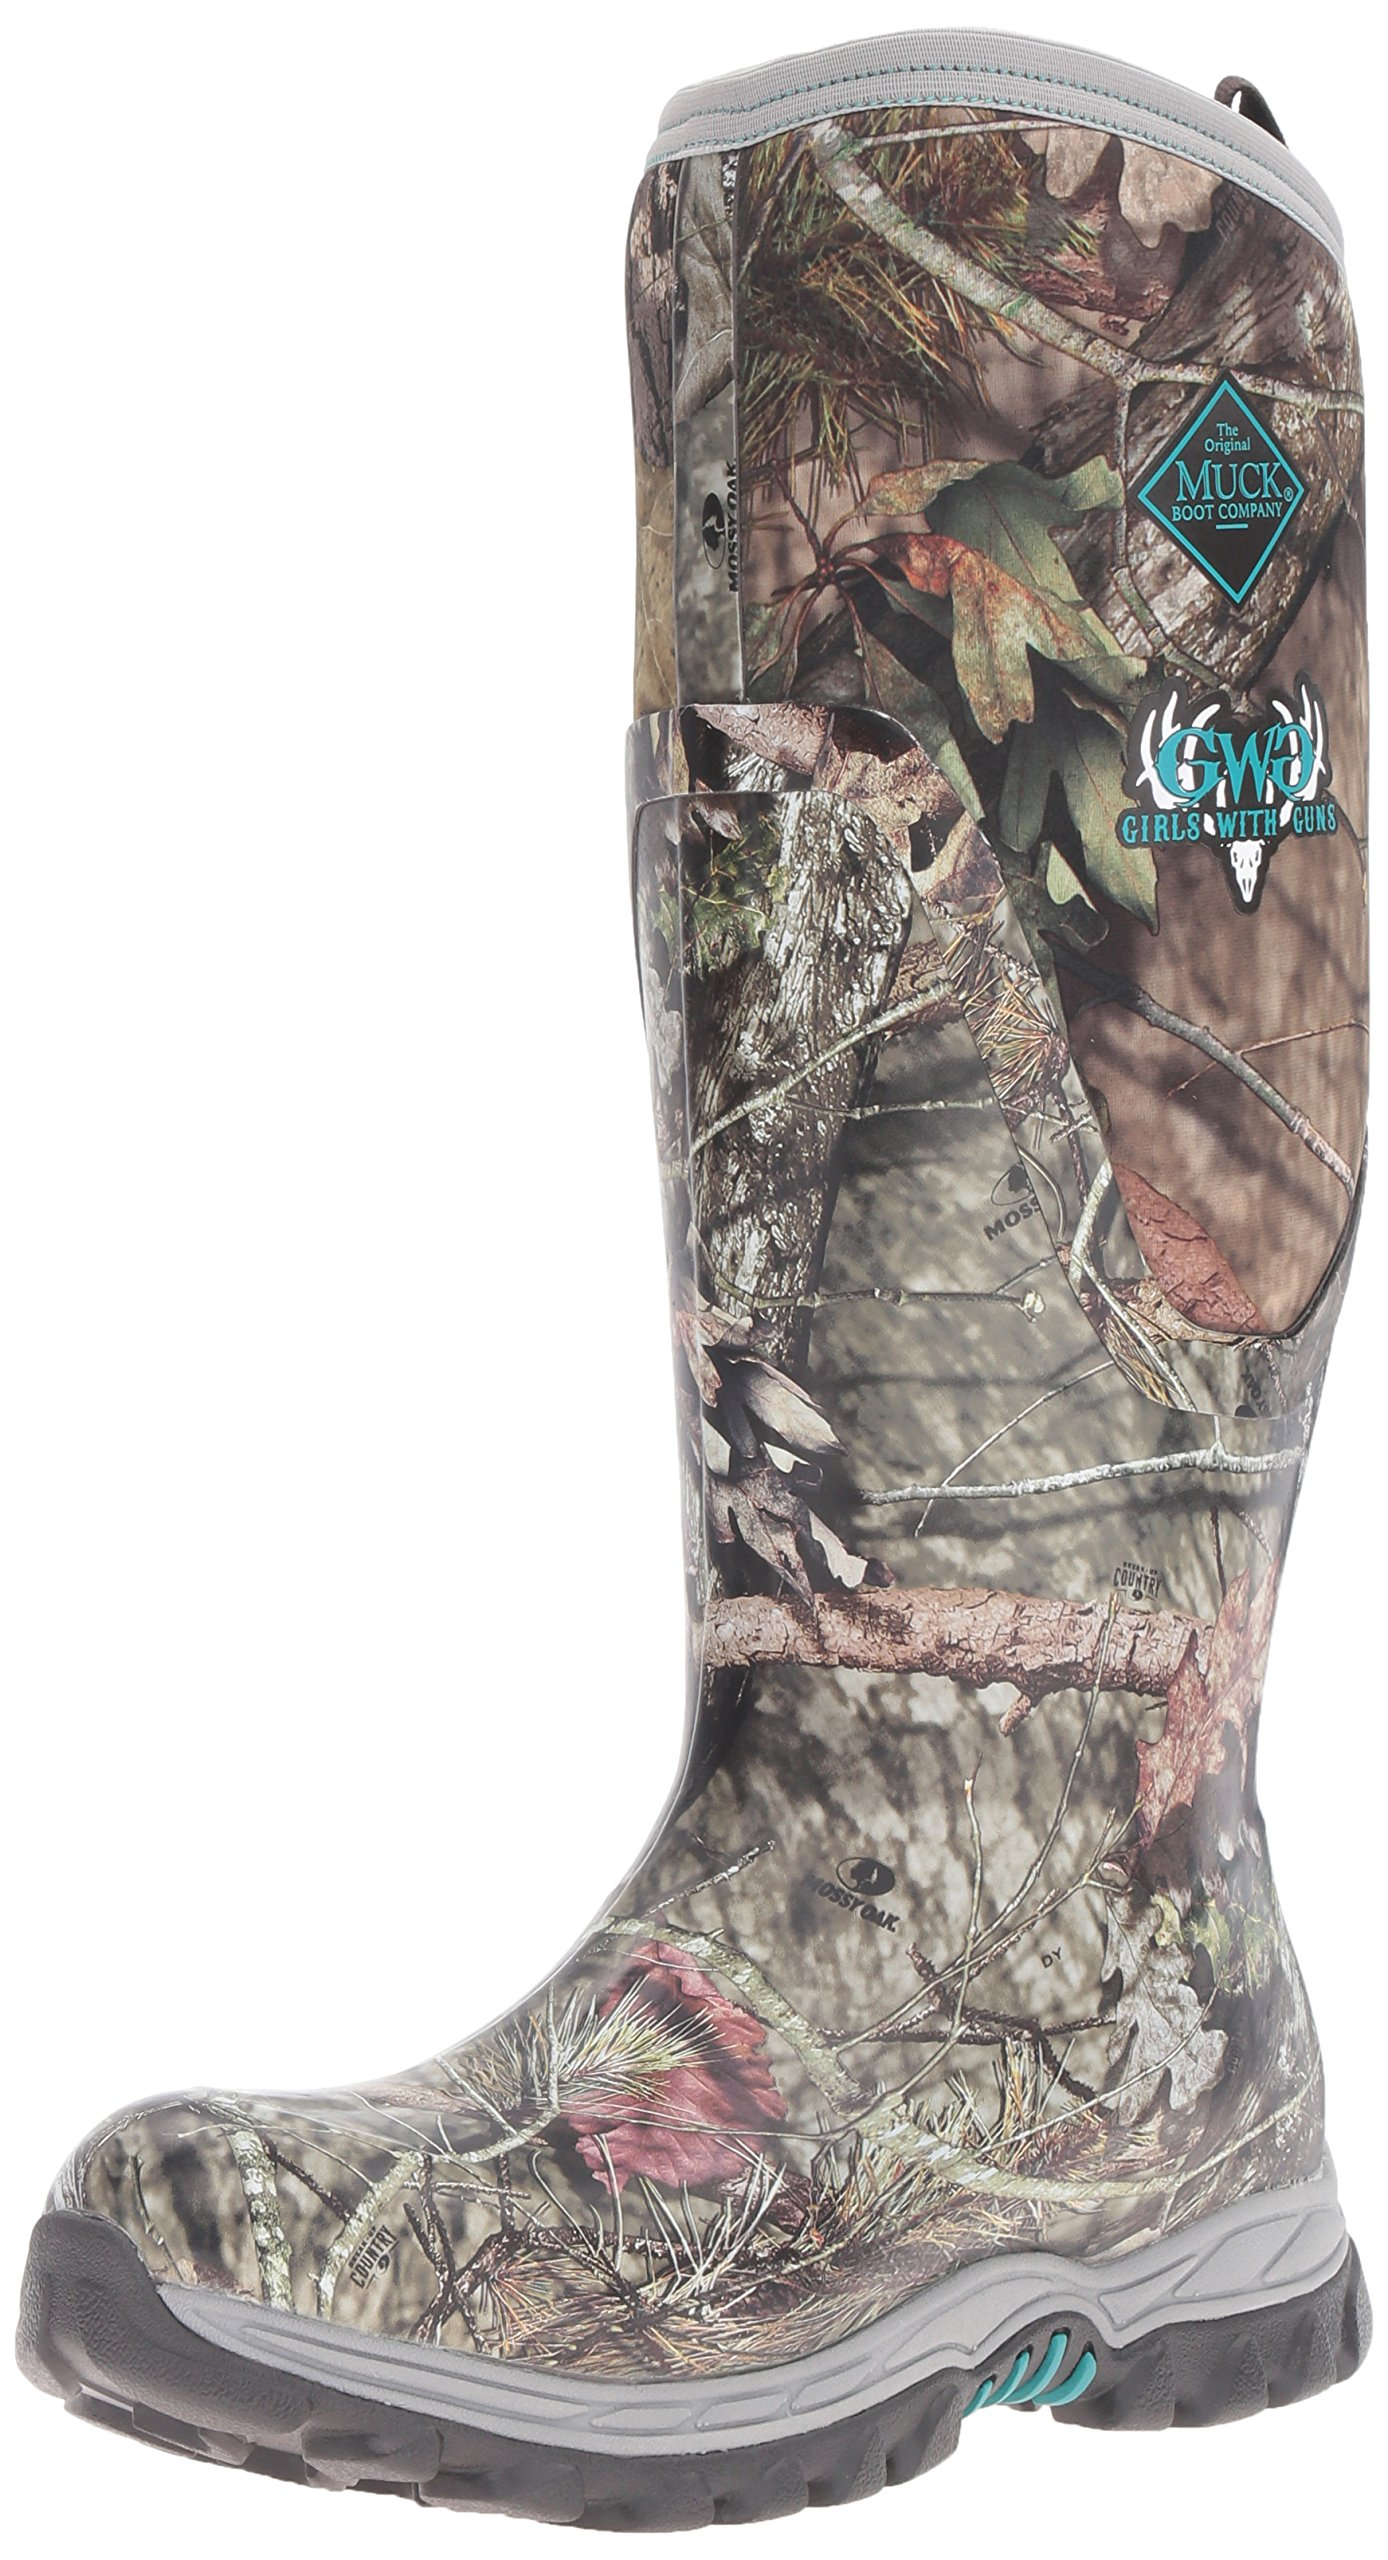 Muck Boot Women's Gwg Arctic Hunter Tall Snow Boot, Bark/Mossy Oak Country, 9 M US